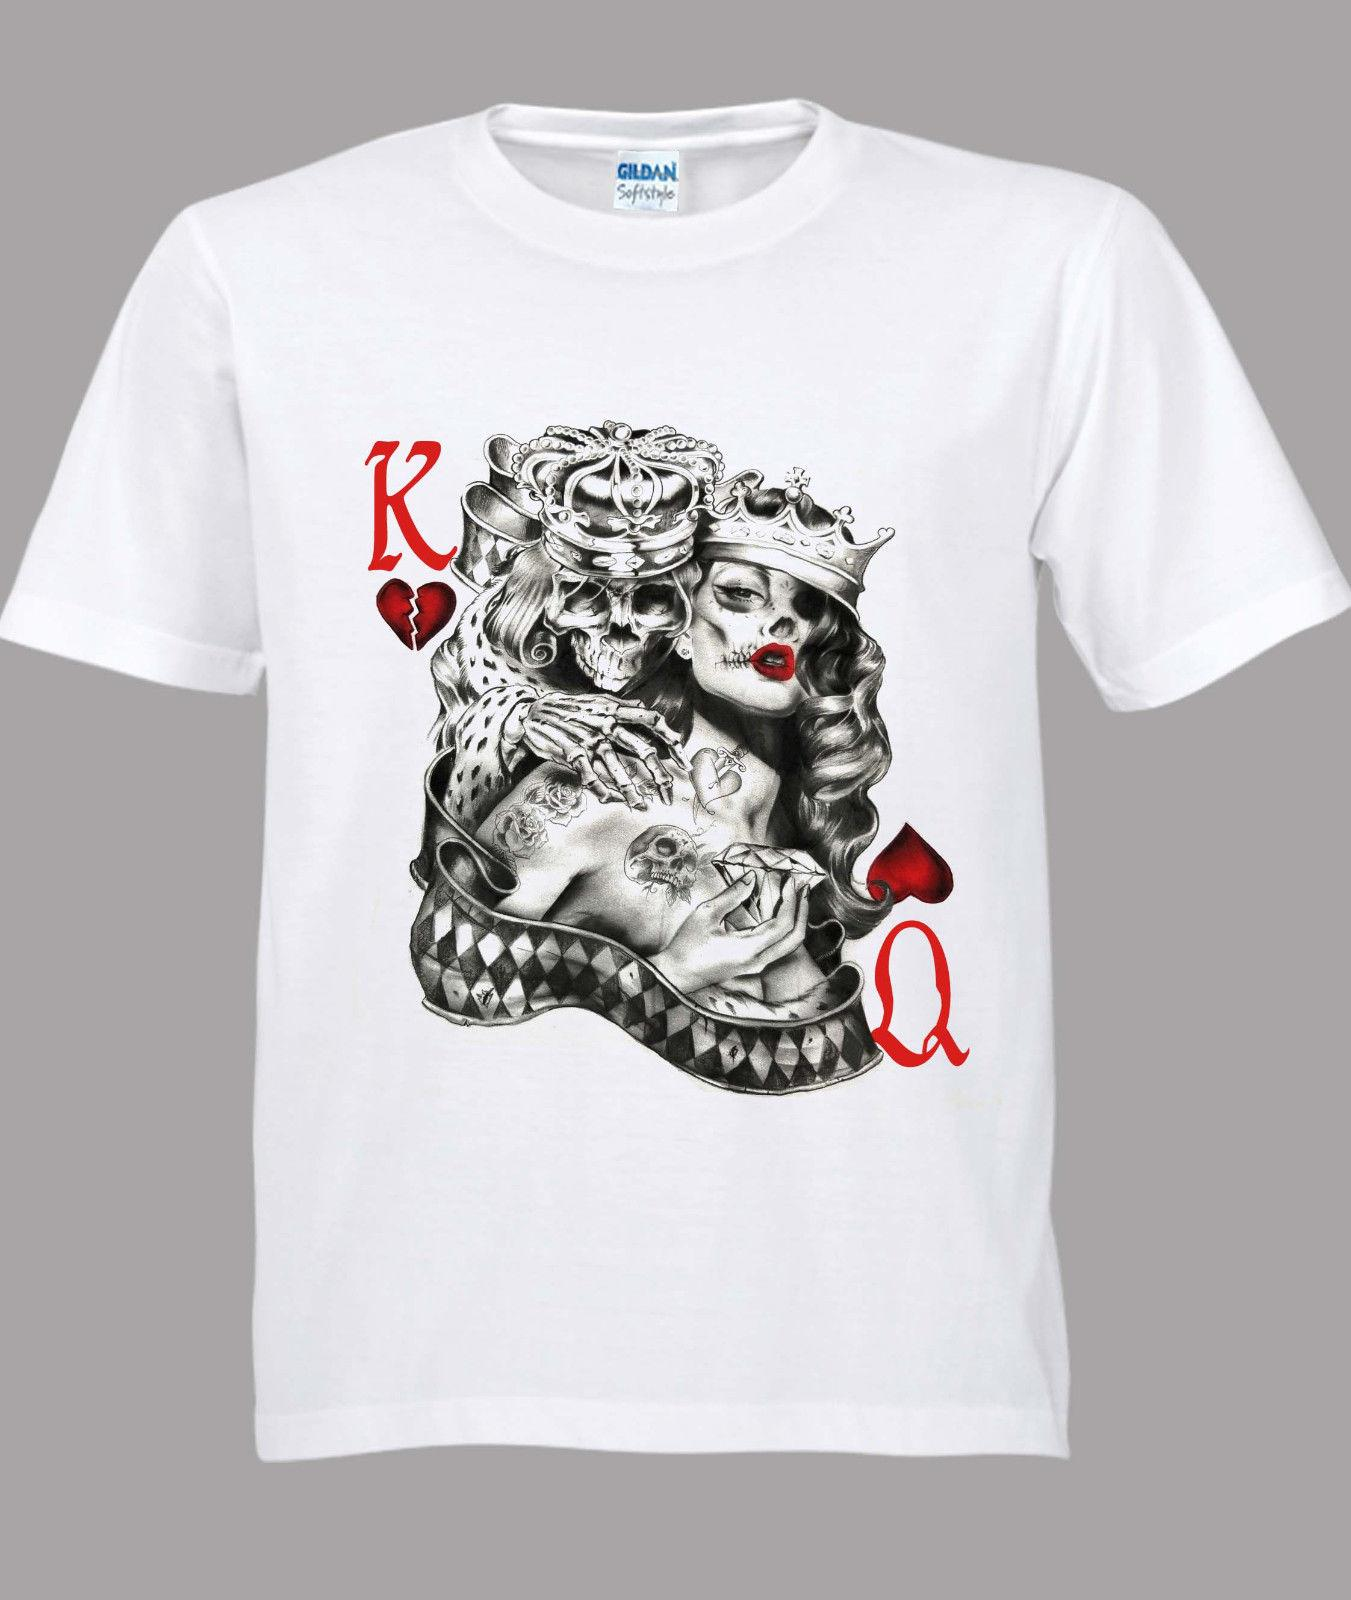 1a8fa4189 King & Queen Of Hearts Tattoo Sugar Skull Poker Playing Card White Tshirt S  3XL Coolest T Shirt Shirts With Designs From Twofulcup, $16.24| DHgate.Com